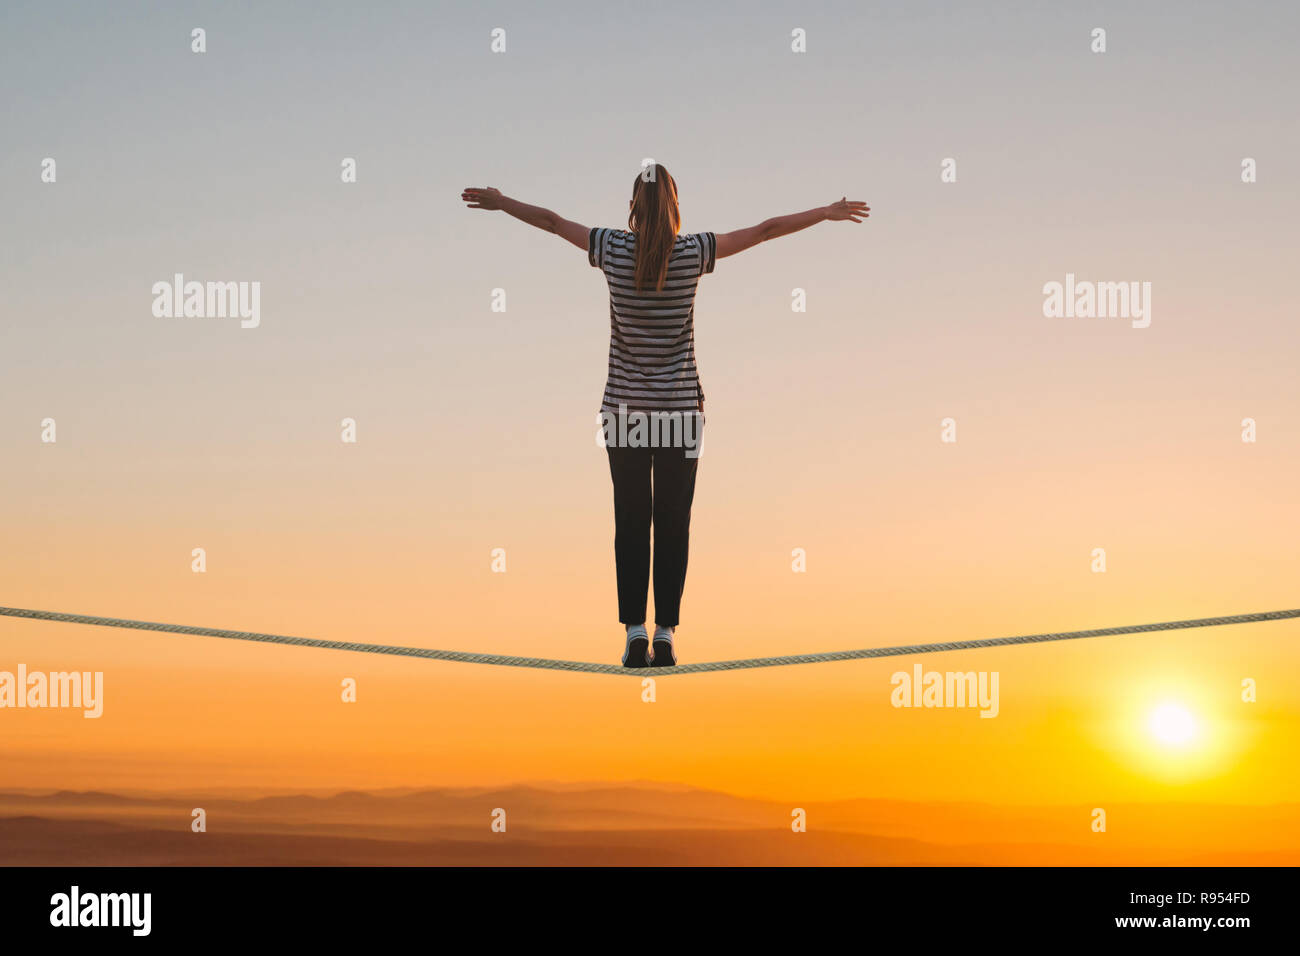 A girl stands on the rope and raises her hands against the sunset. The concept of freedom and confidence. - Stock Image